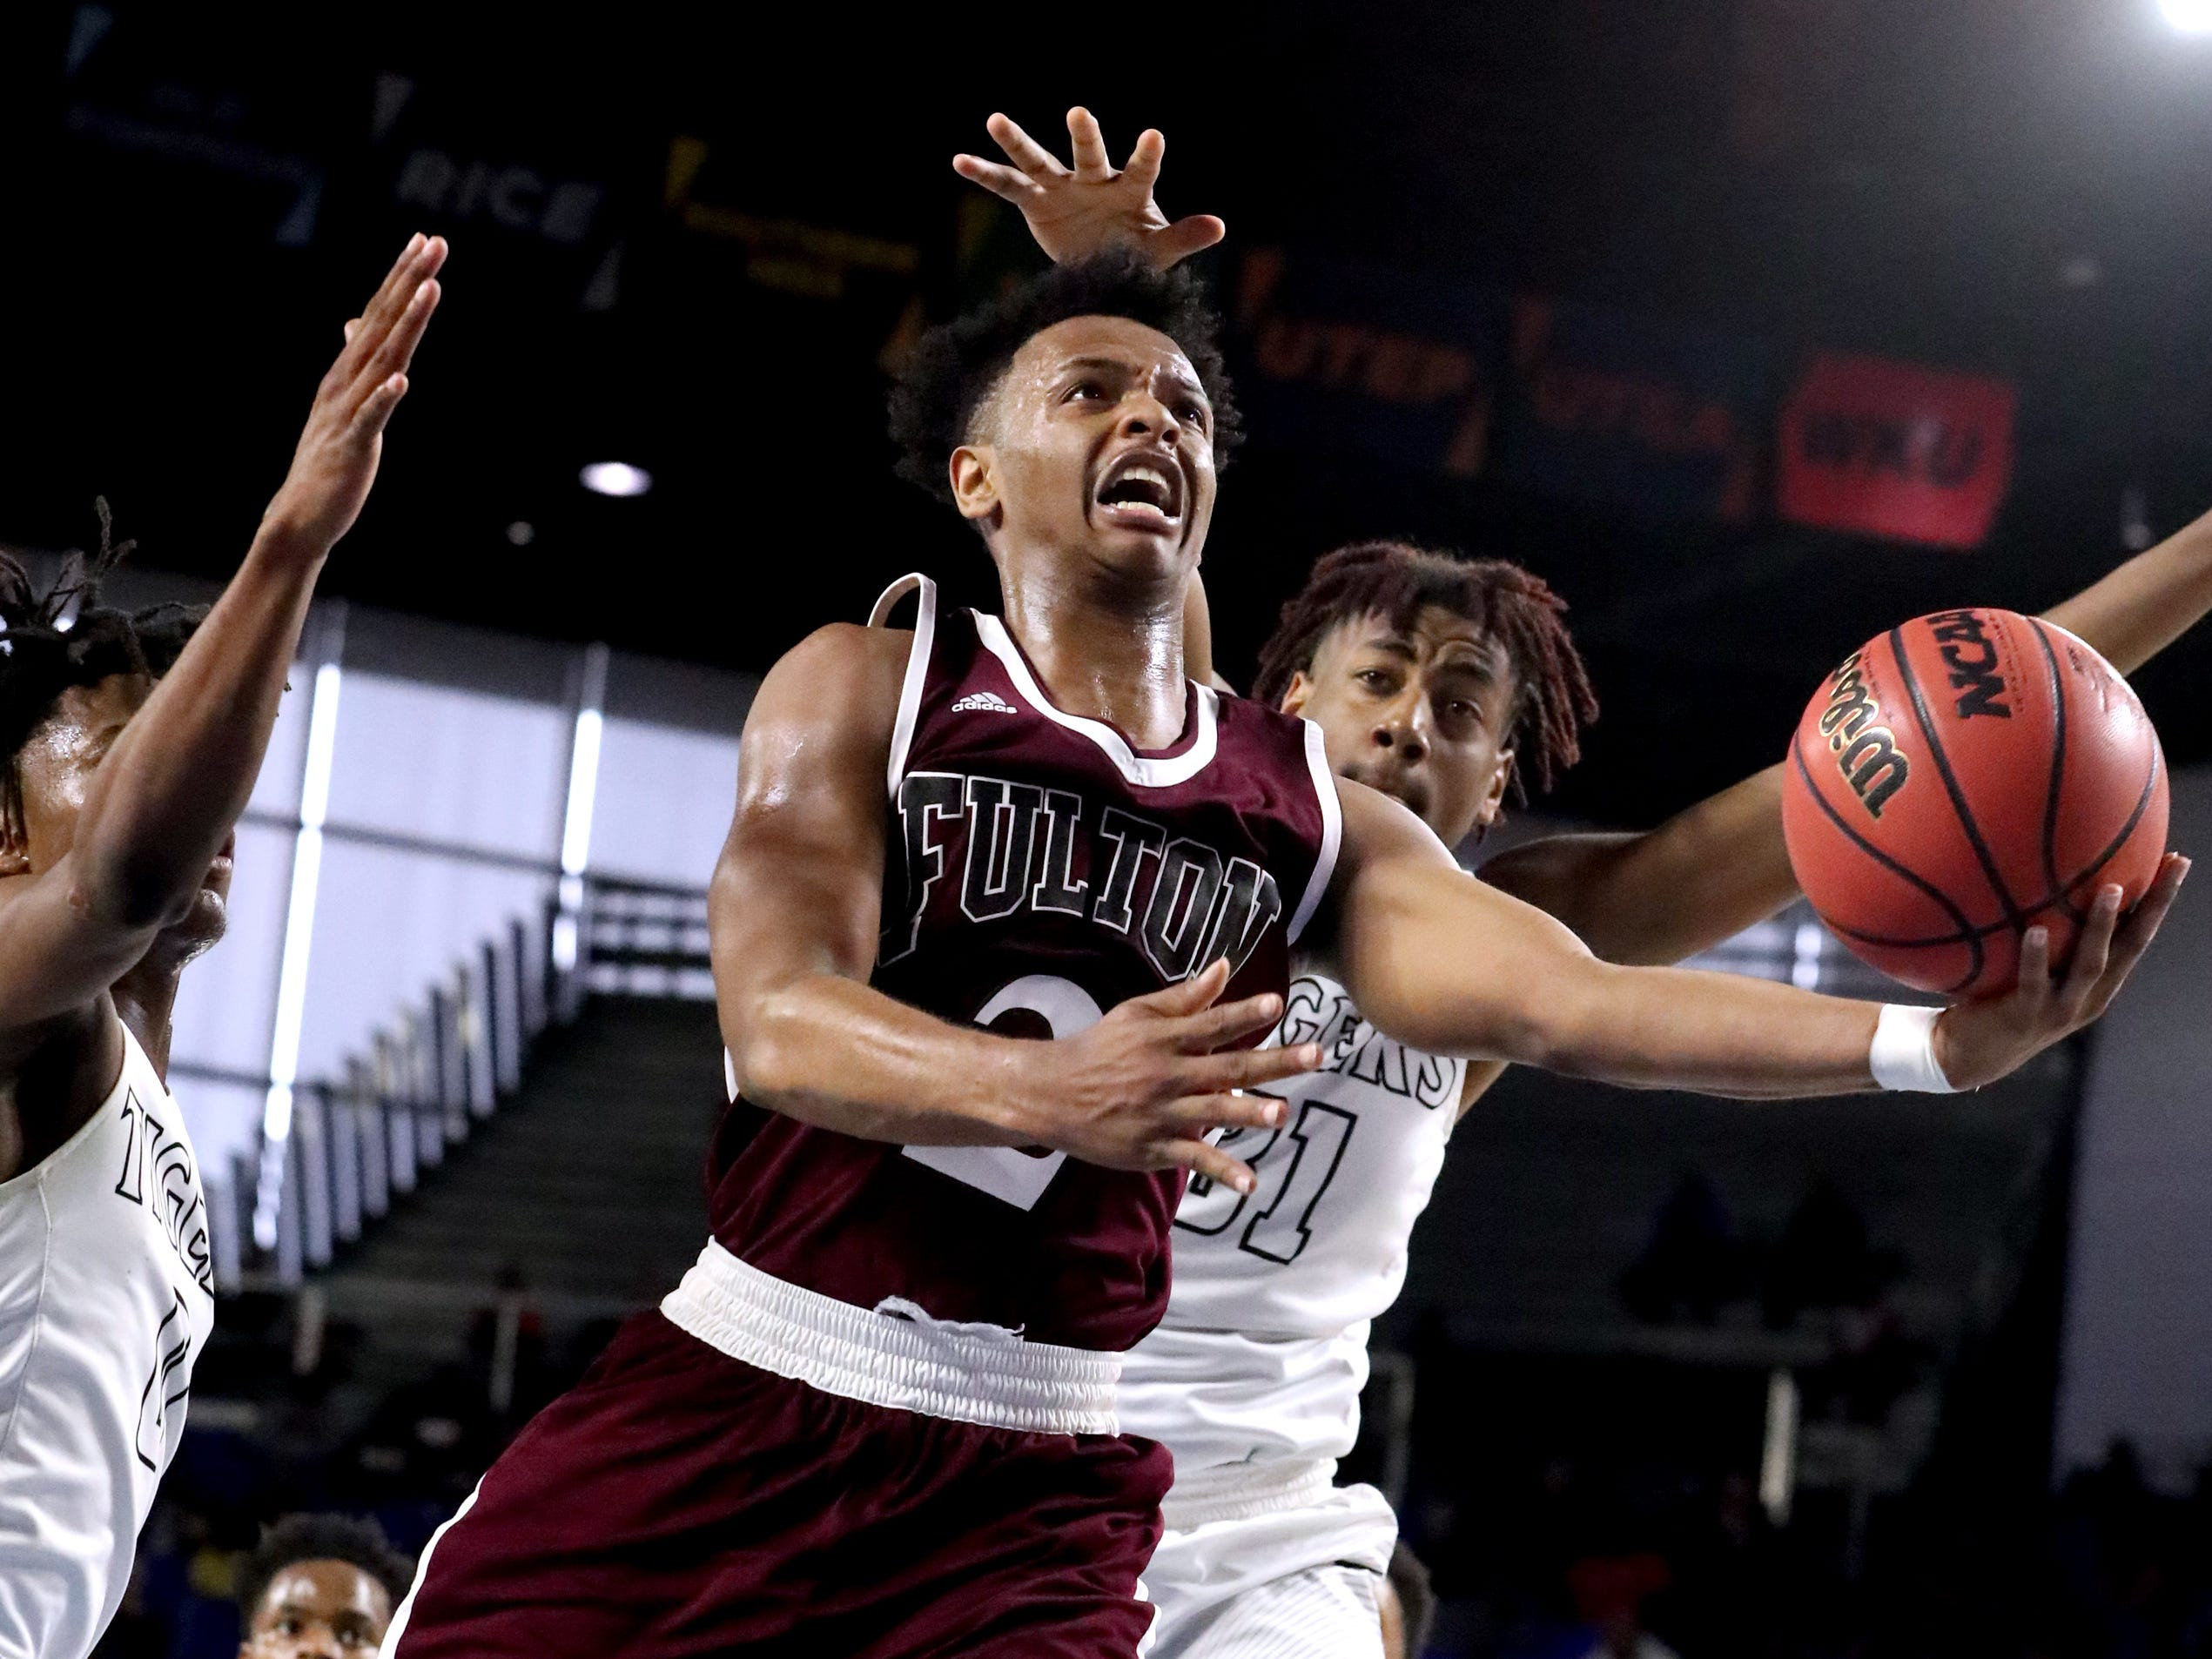 Fulton's Ron Davis III (2) shoots the ball between Mitchell's Michael Rice (0) and Mitchell's Justin Austin (31) during the quarterfinal round of the TSSAA Class AA Boys State Tournament, on Wednesday, March 13, 2019, at Murphy Center in Murfreesboro, Tenn.